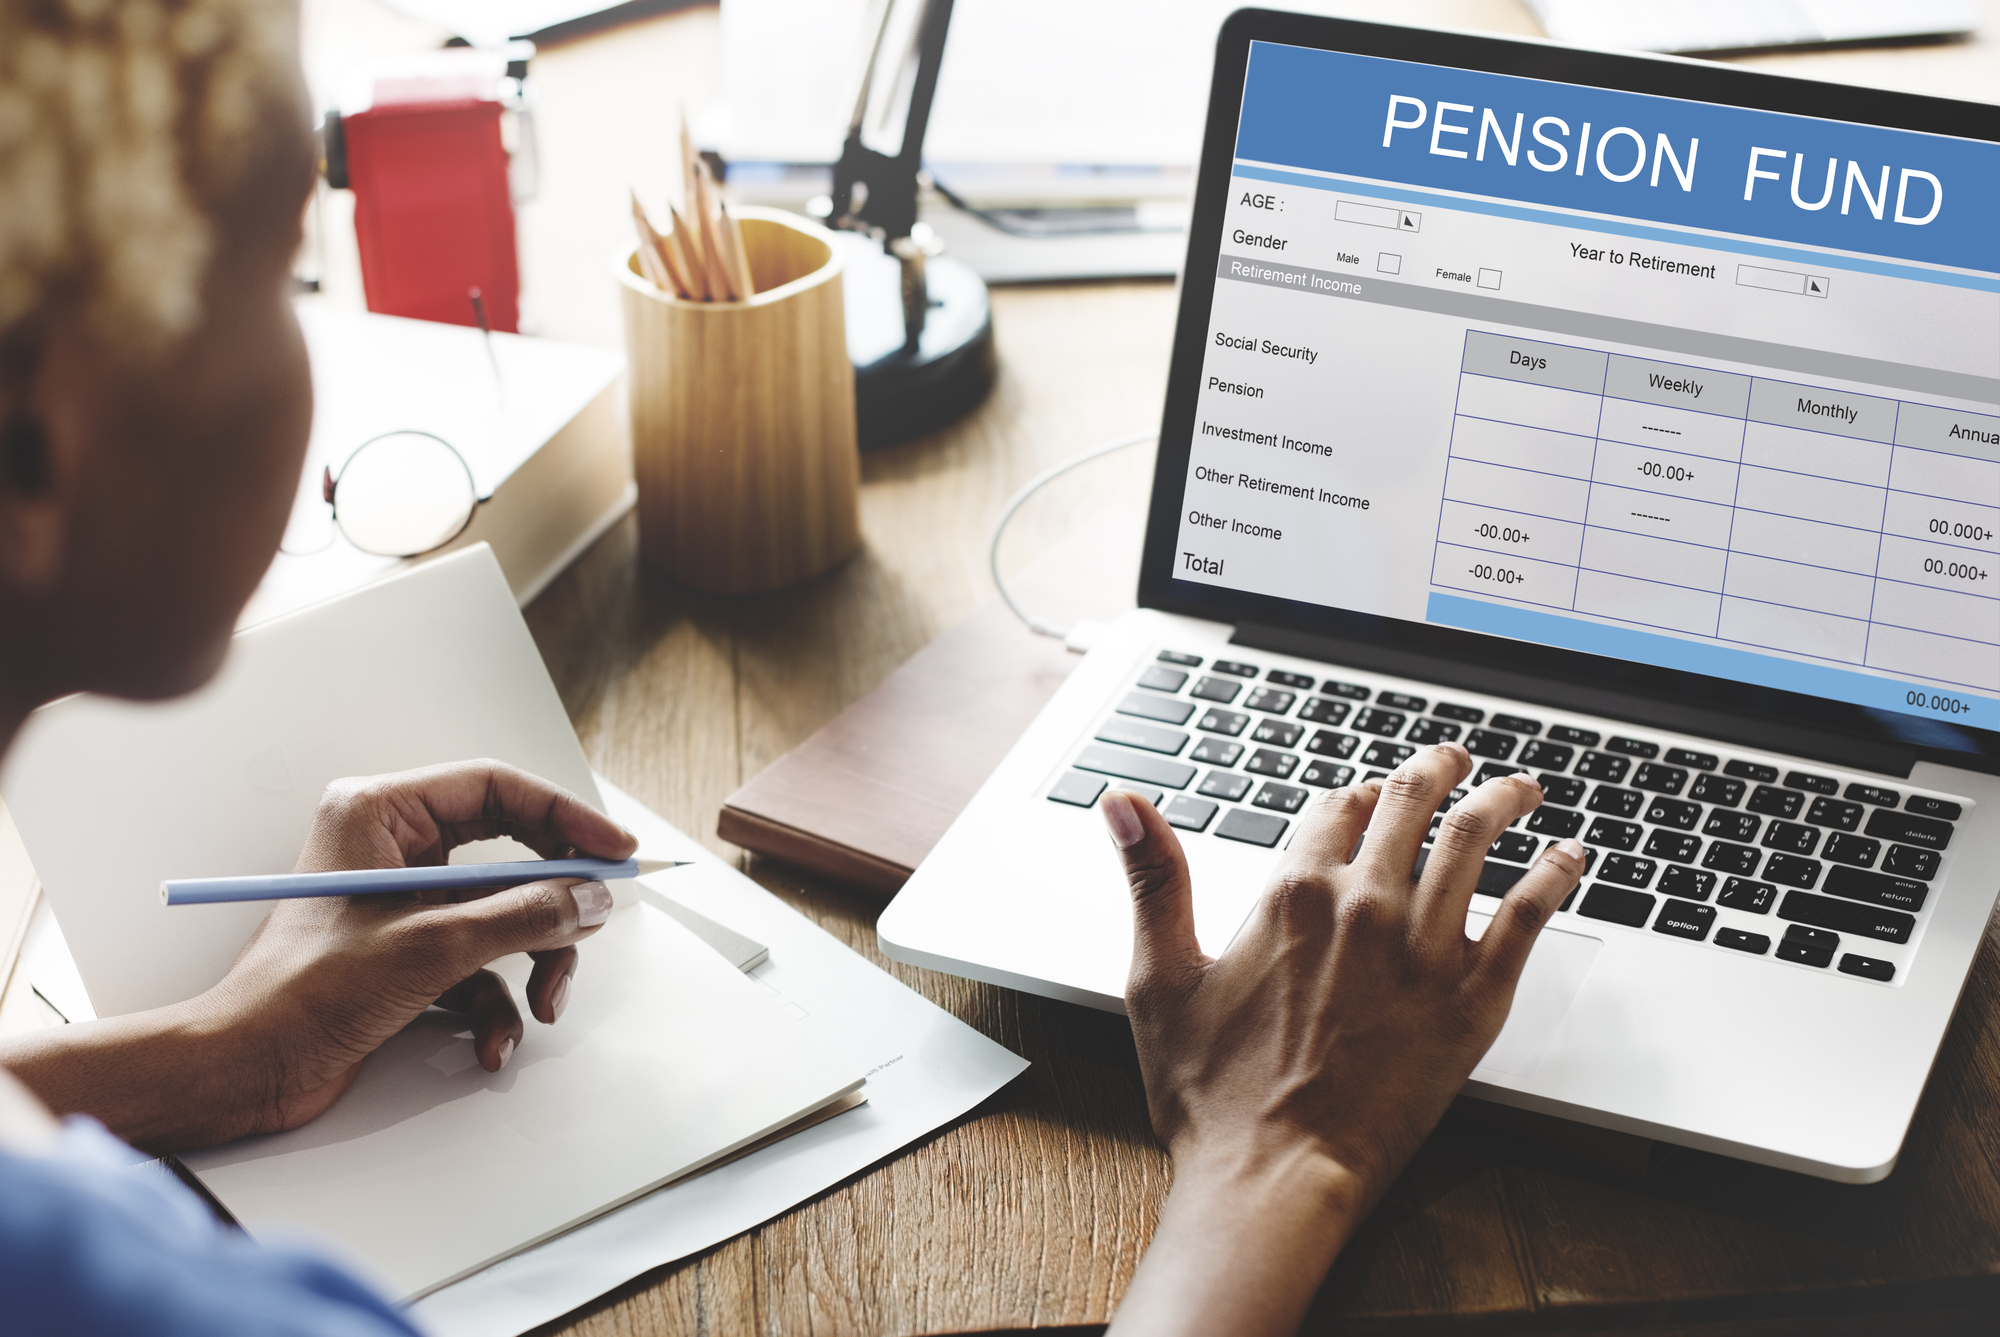 I Left My Job.  What Options Do I Have With My Retirement Account?